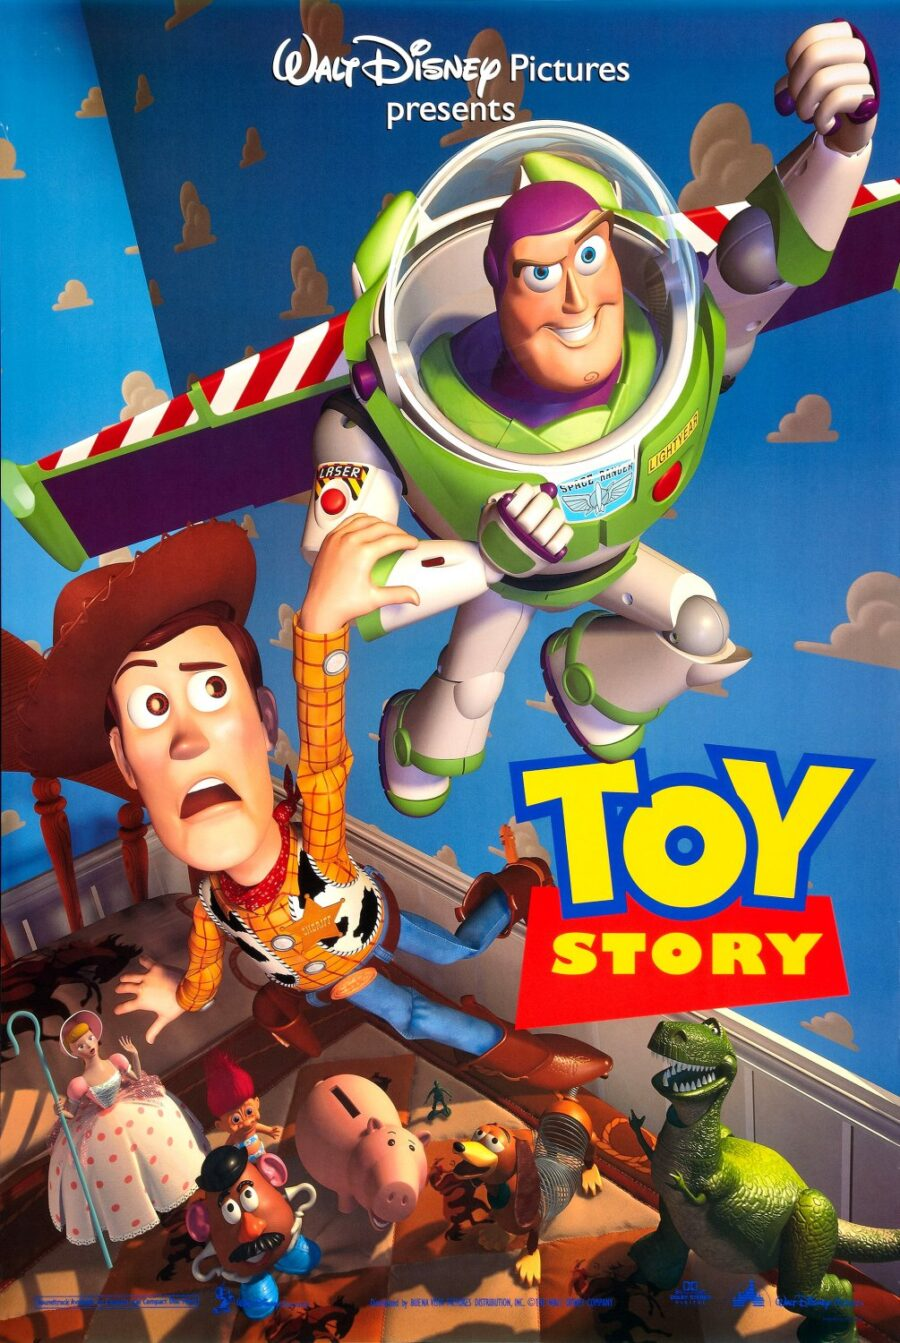 Pixar's Best movie